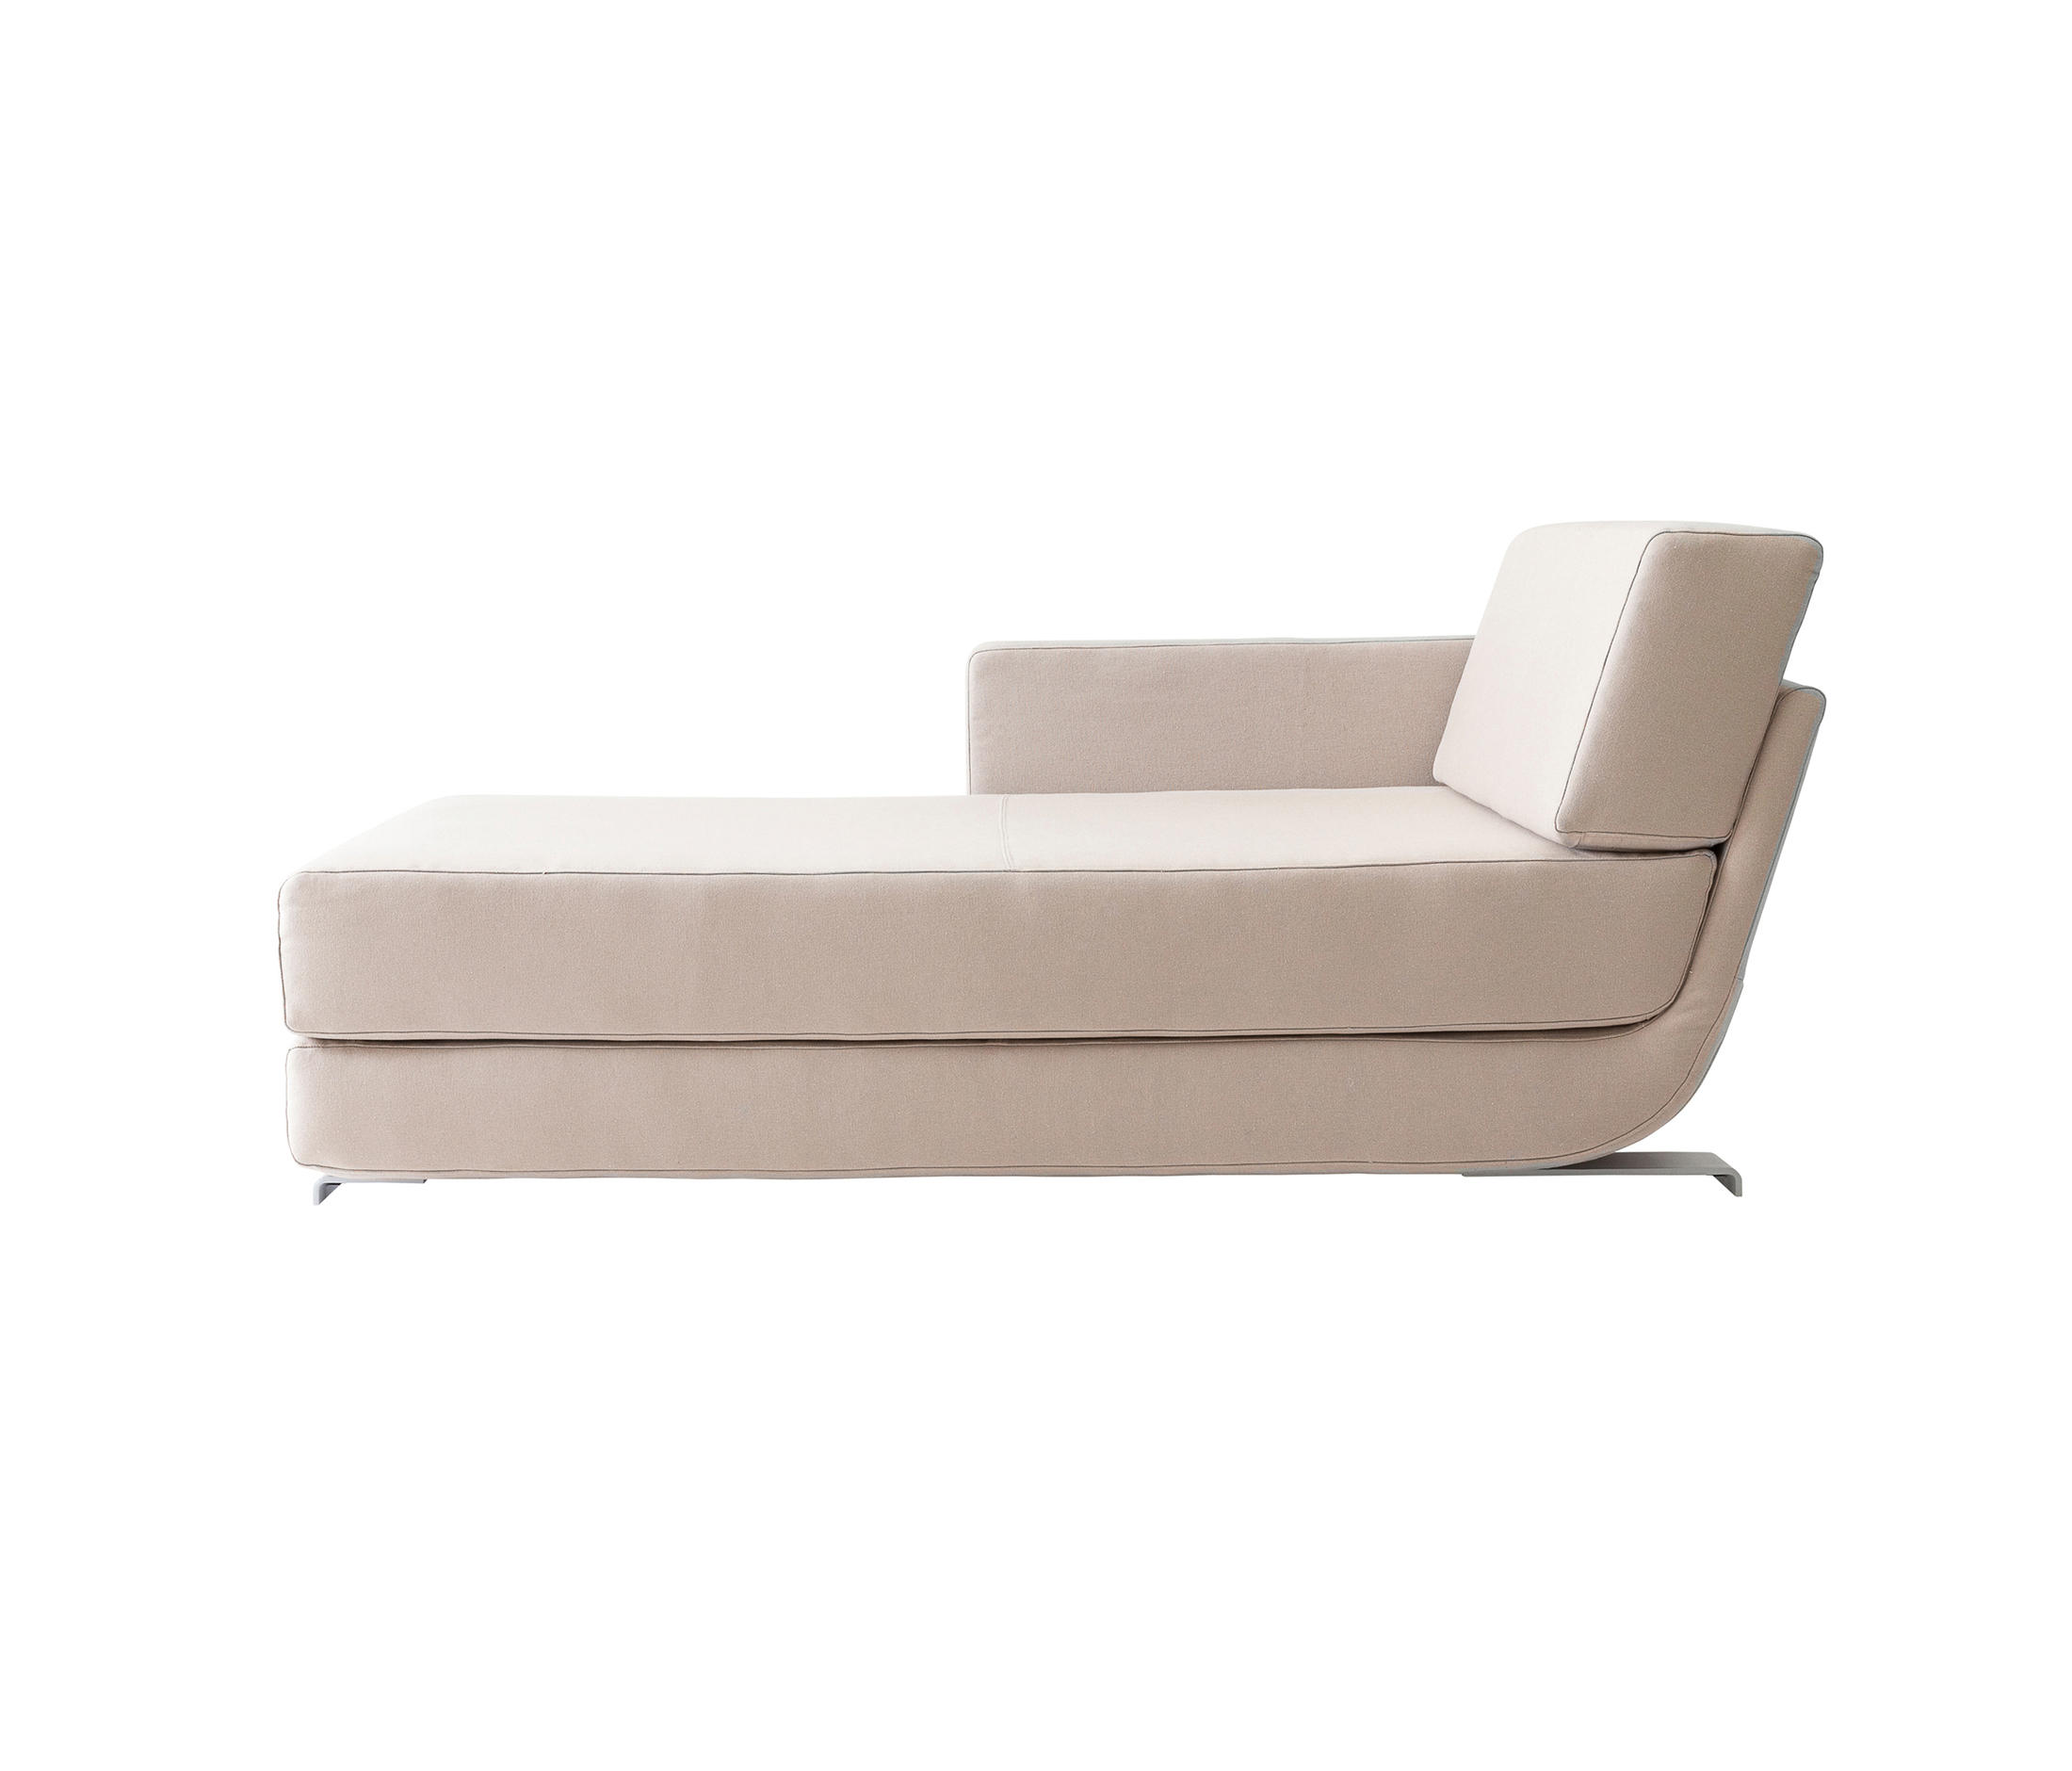 Lounge chaise long sofa beds from softline a s architonic - Sofa bed with chaise lounge ...